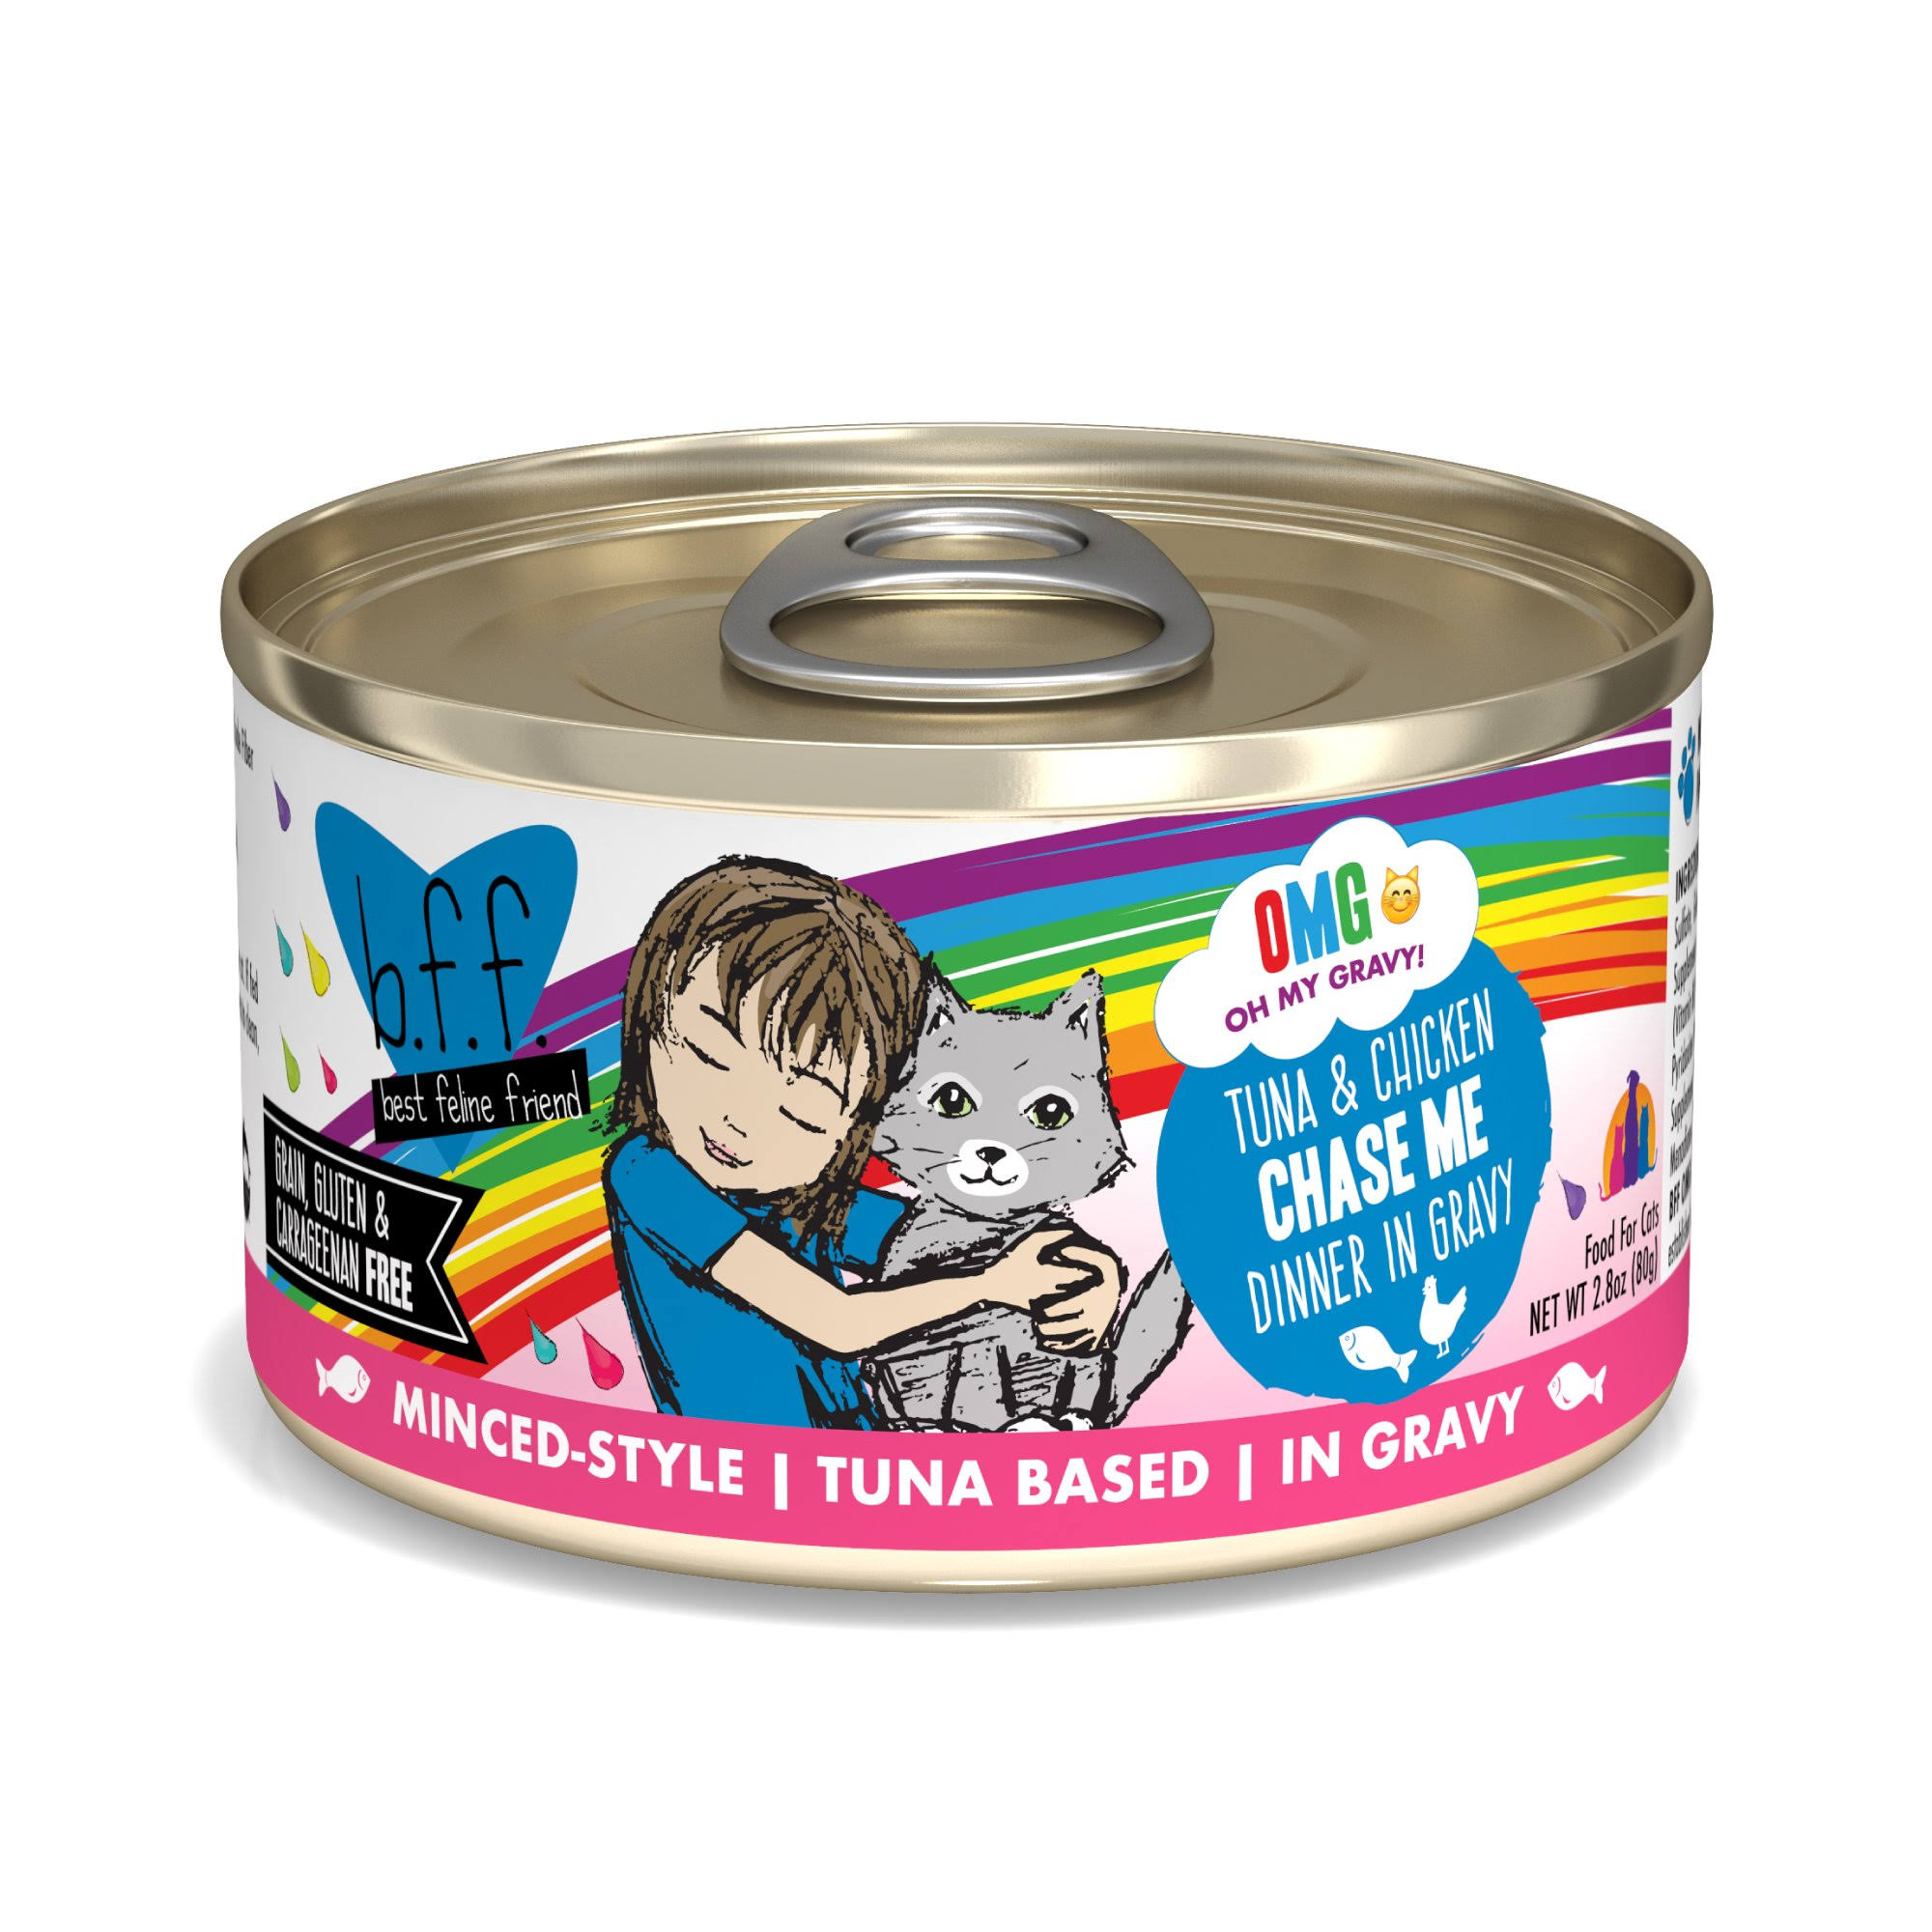 B.f.f. OMG Tuna & Chicken Chase Me Dinner in Gravy OMG Food for Cats - 2.8 oz